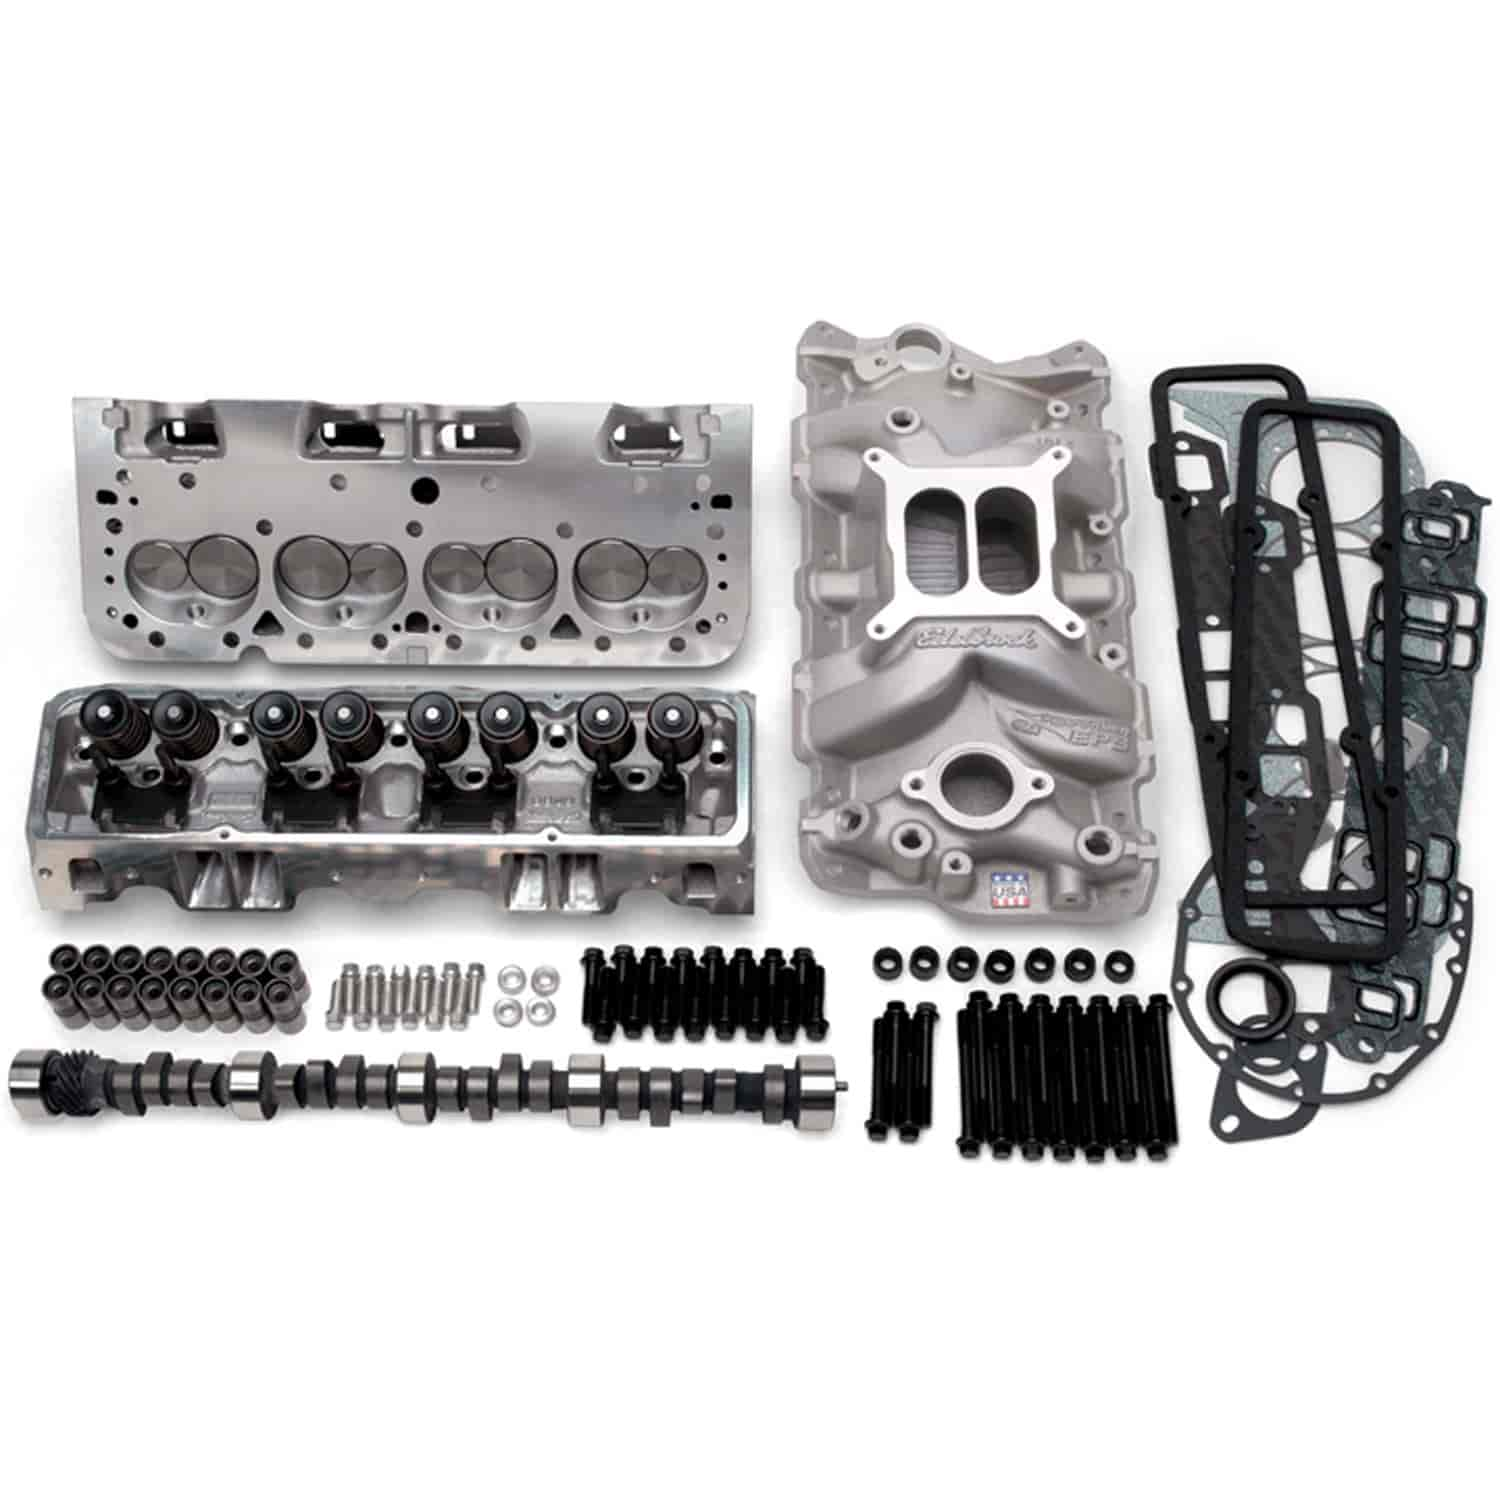 Edelbrock E-Street Power Package Top End Kit for 1955-1986 Small Block Chevy